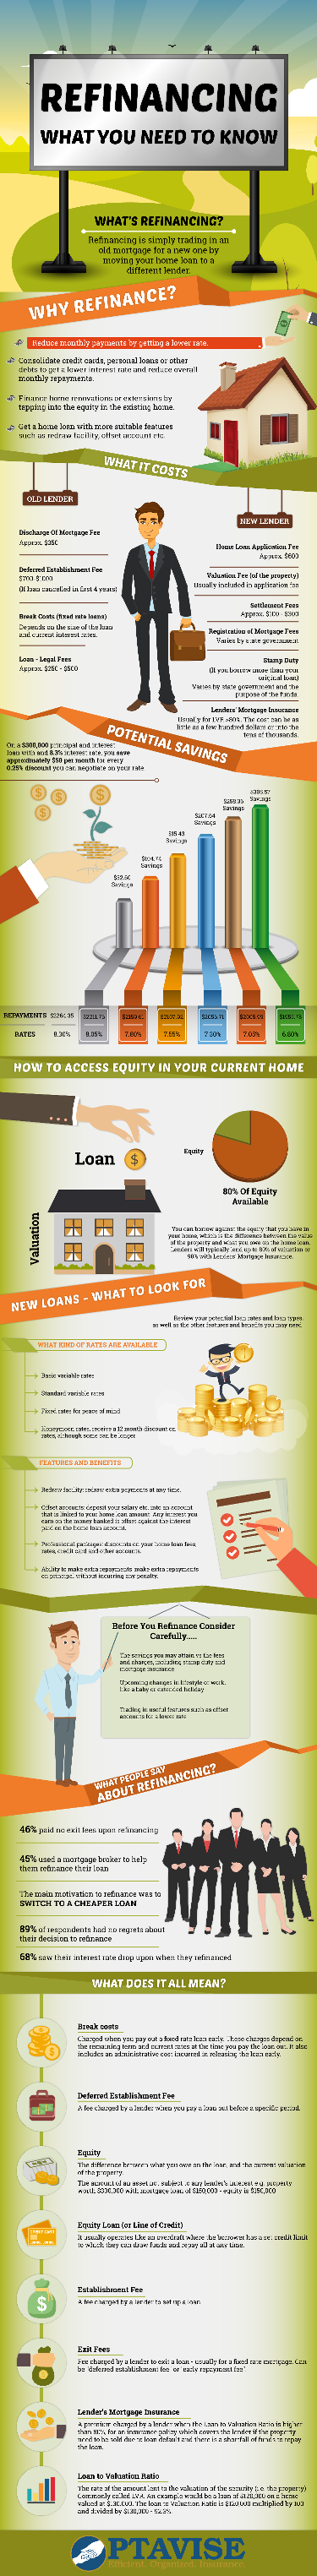 Refinancing What You Need To Know